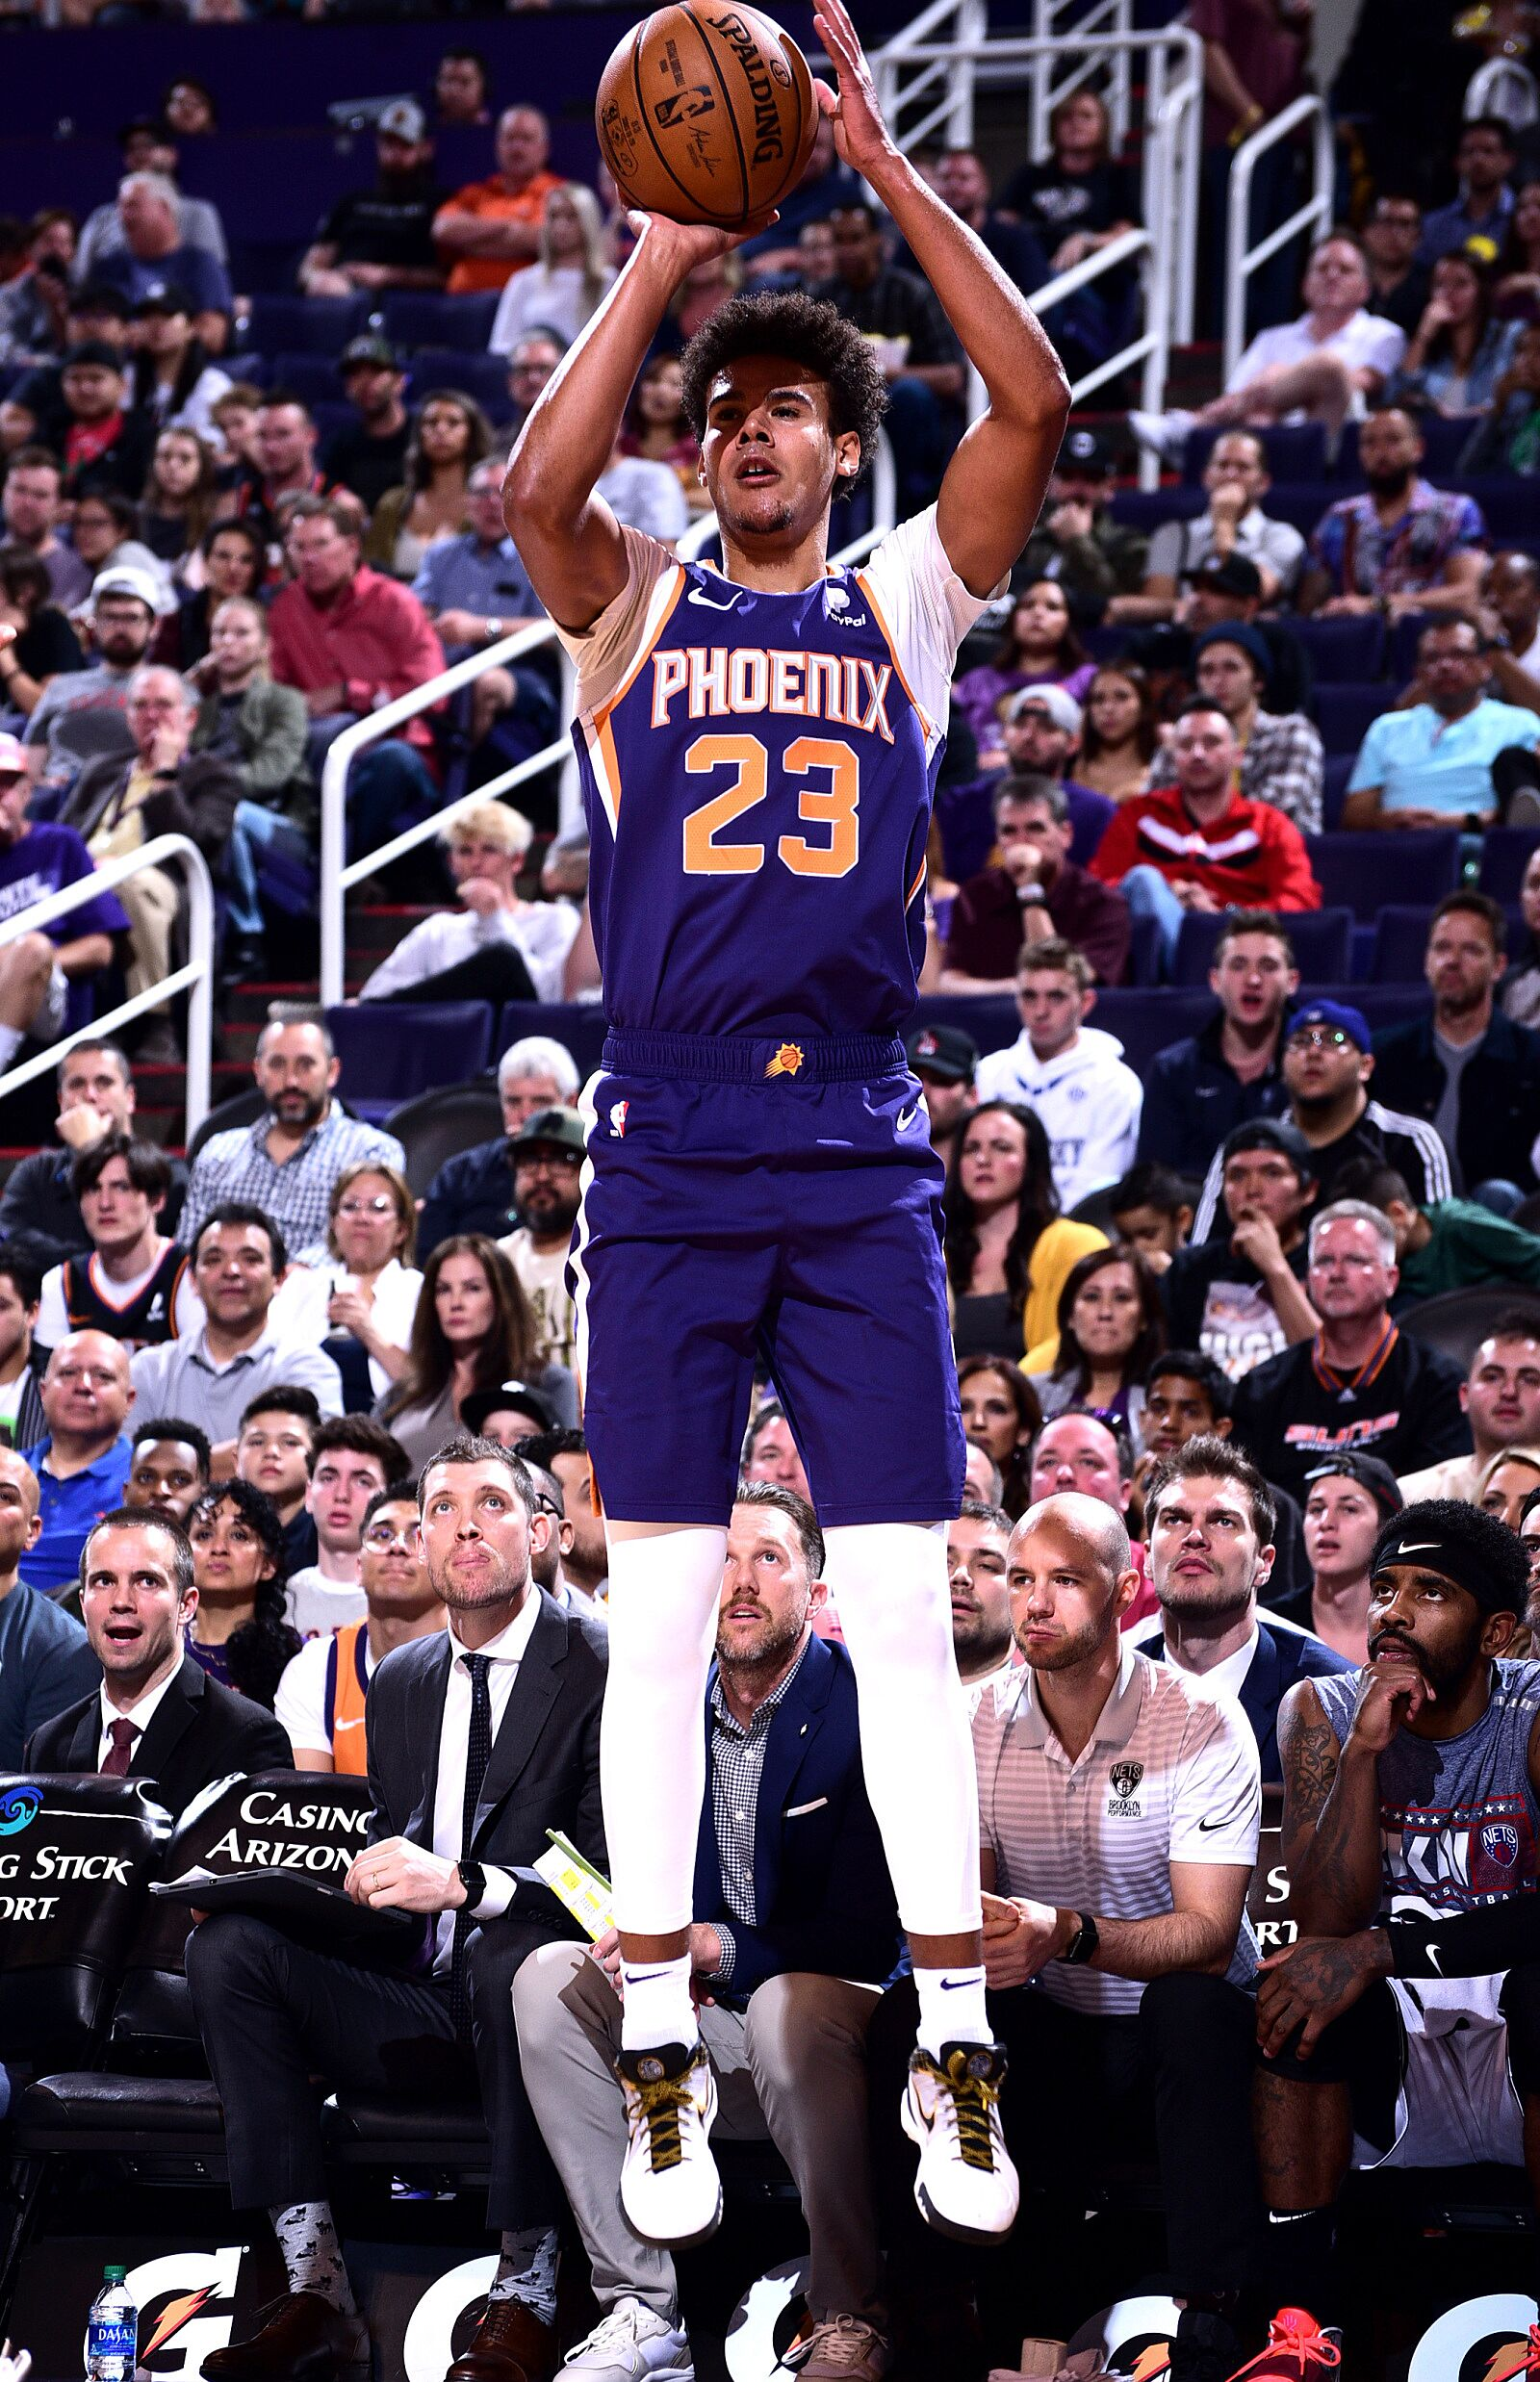 Why they are winning: The Phoenix Suns are a good 3-point shooting team again